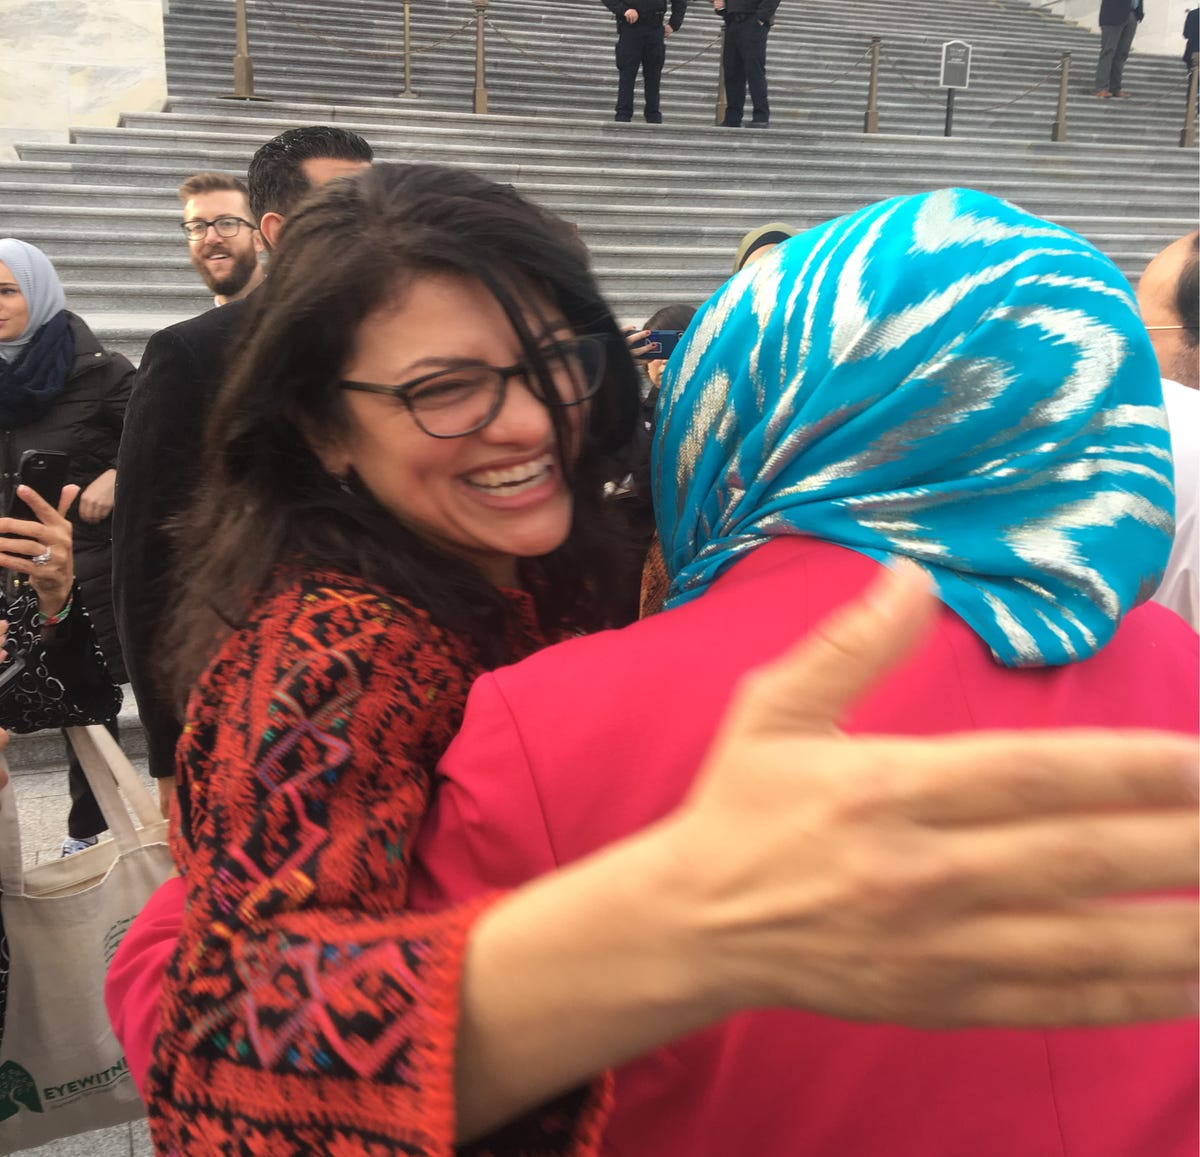 Impeach Trump? Rashida Tlaib, Michigan Democrat, throws expletive